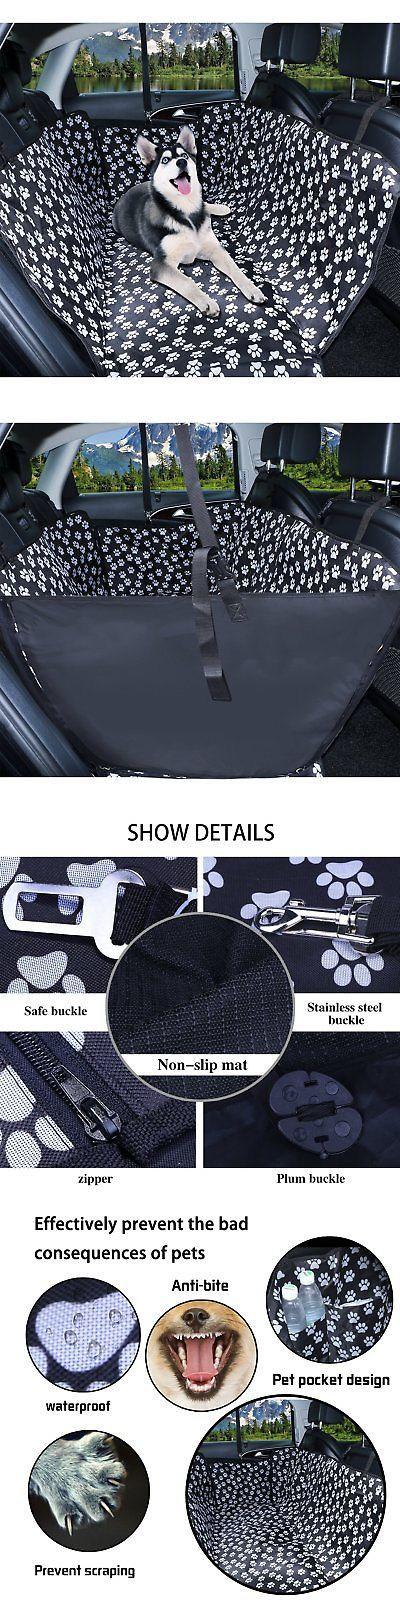 Car Seat Covers 117426: Dog Seat Cover, Pet Car Seat Covers For Trucks And Suvs, Waterproof And Nonslip -> BUY IT NOW ONLY: $41.3 on eBay!